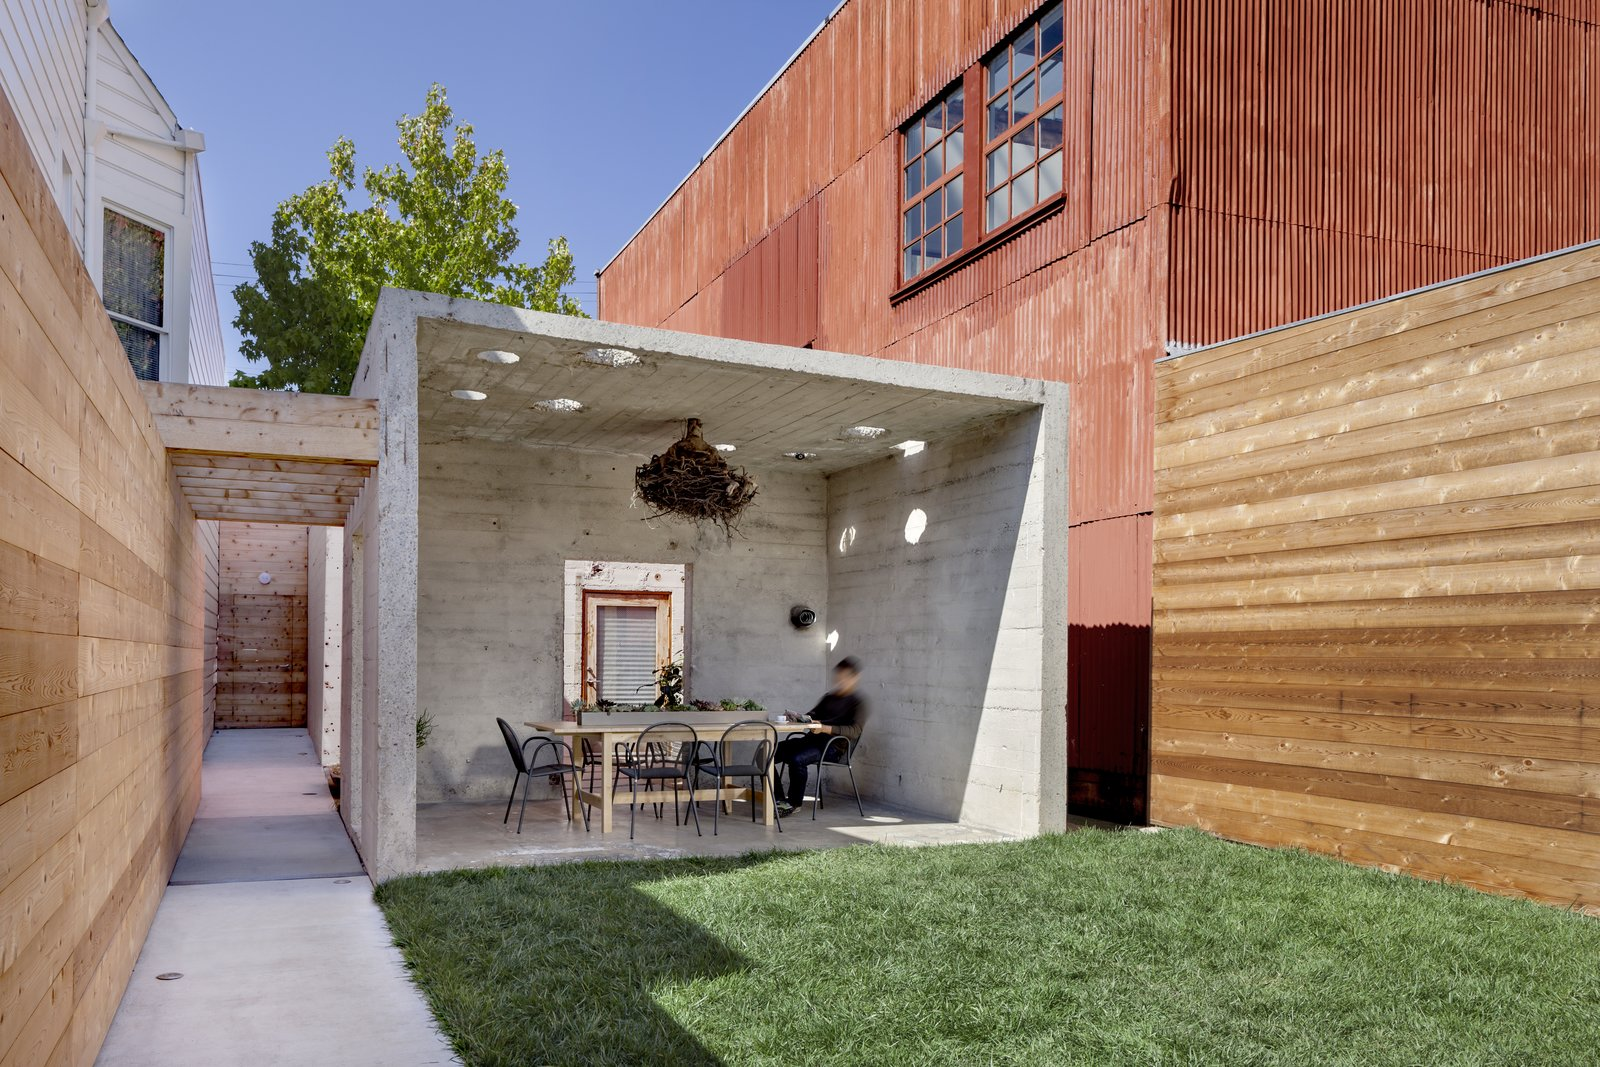 Dining Room, Table, Chair, and Concrete Floor  Shotwell Residence by Todd Davis Architecture